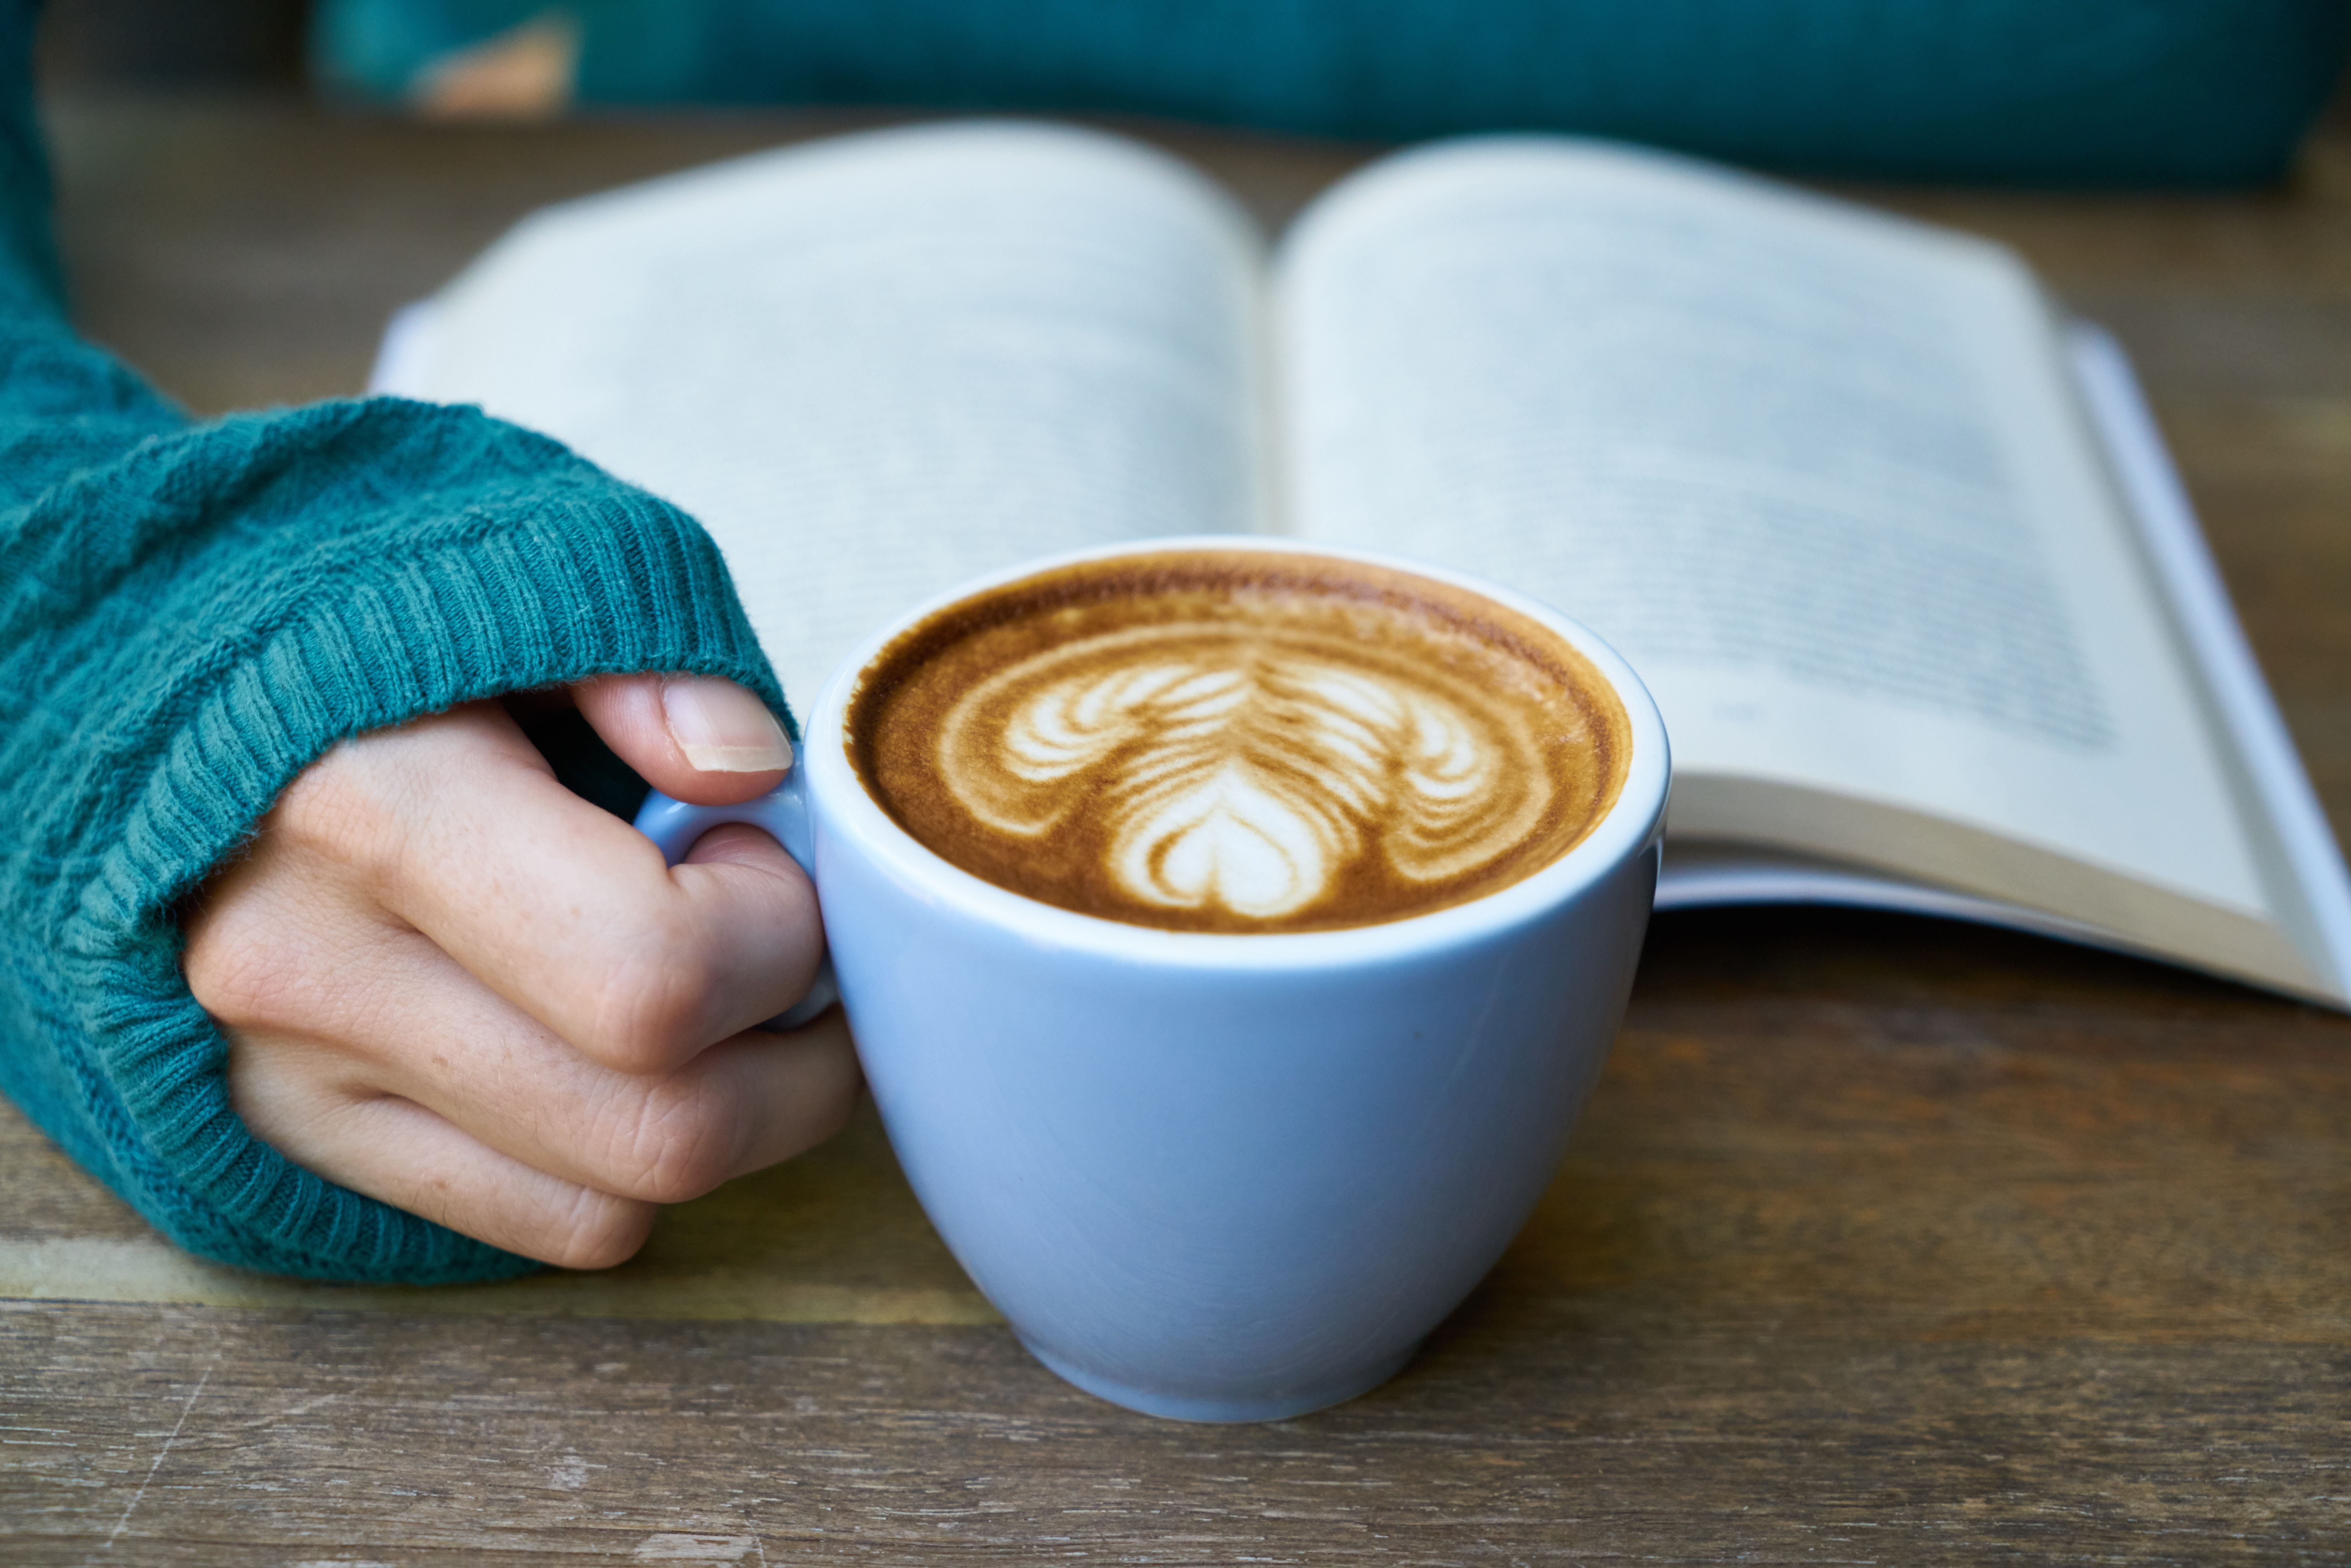 Reading a book while holding coffee